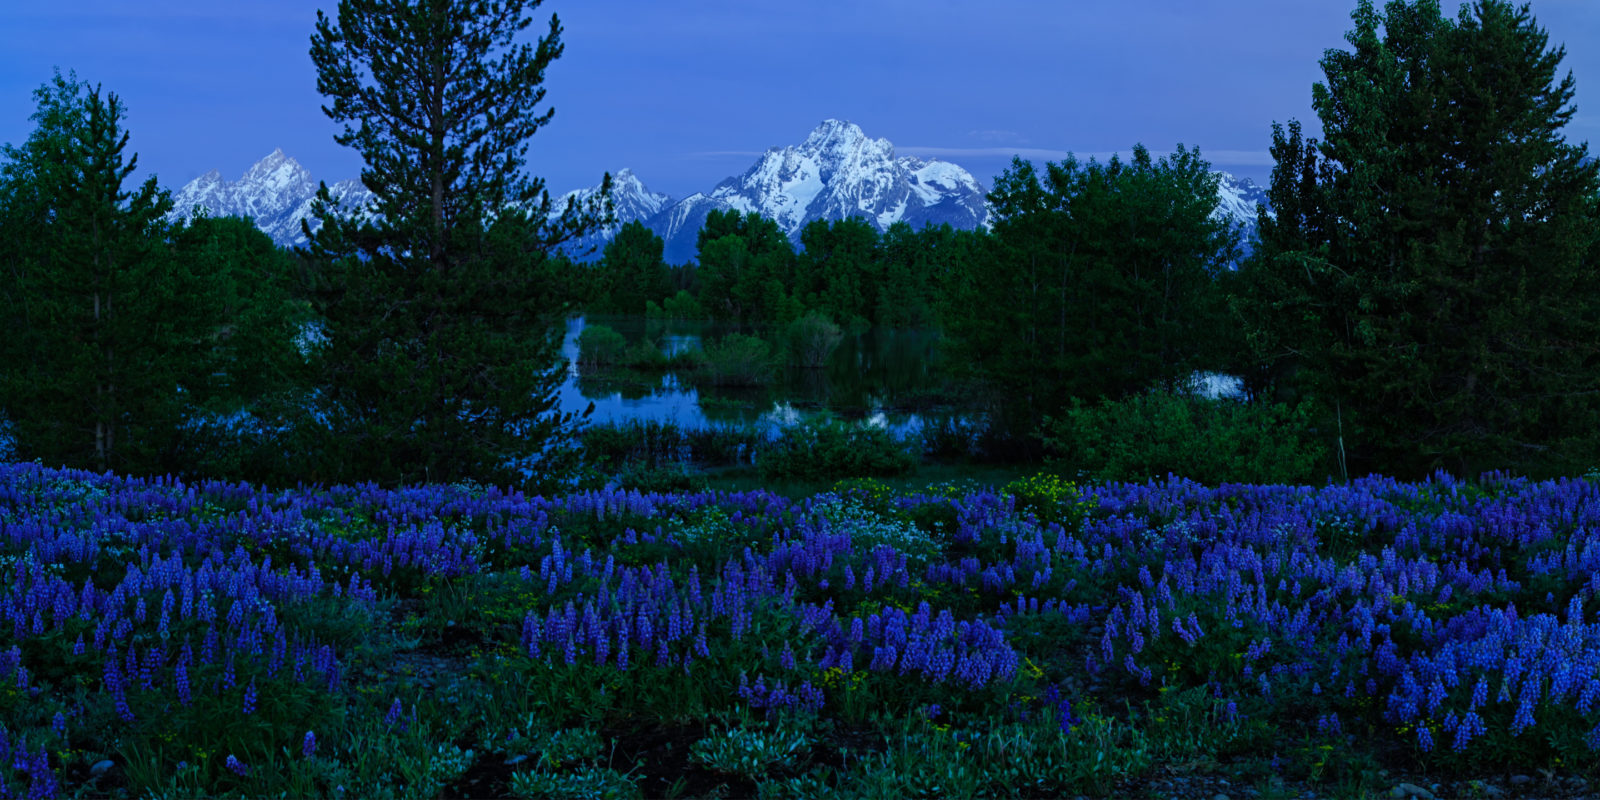 The Grand and Mount Moran